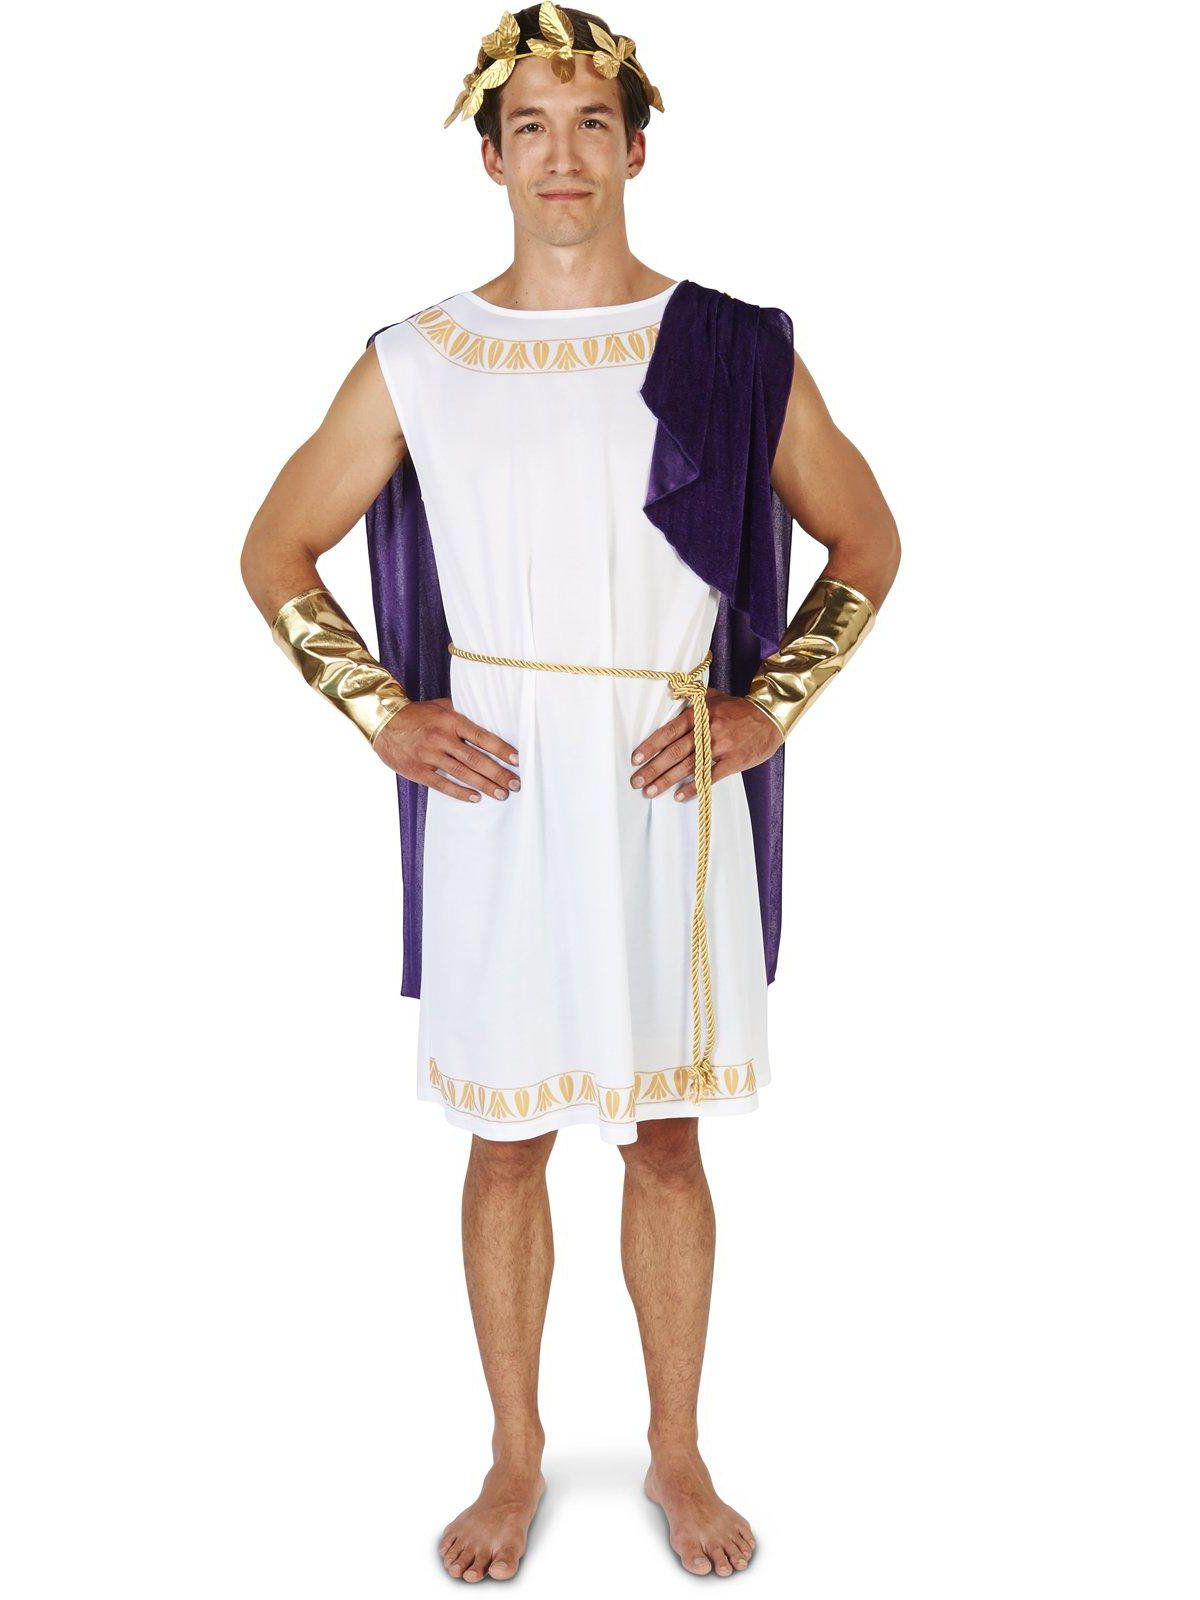 20ff8ecc533 White Toga (Short) Man Costume For Adults